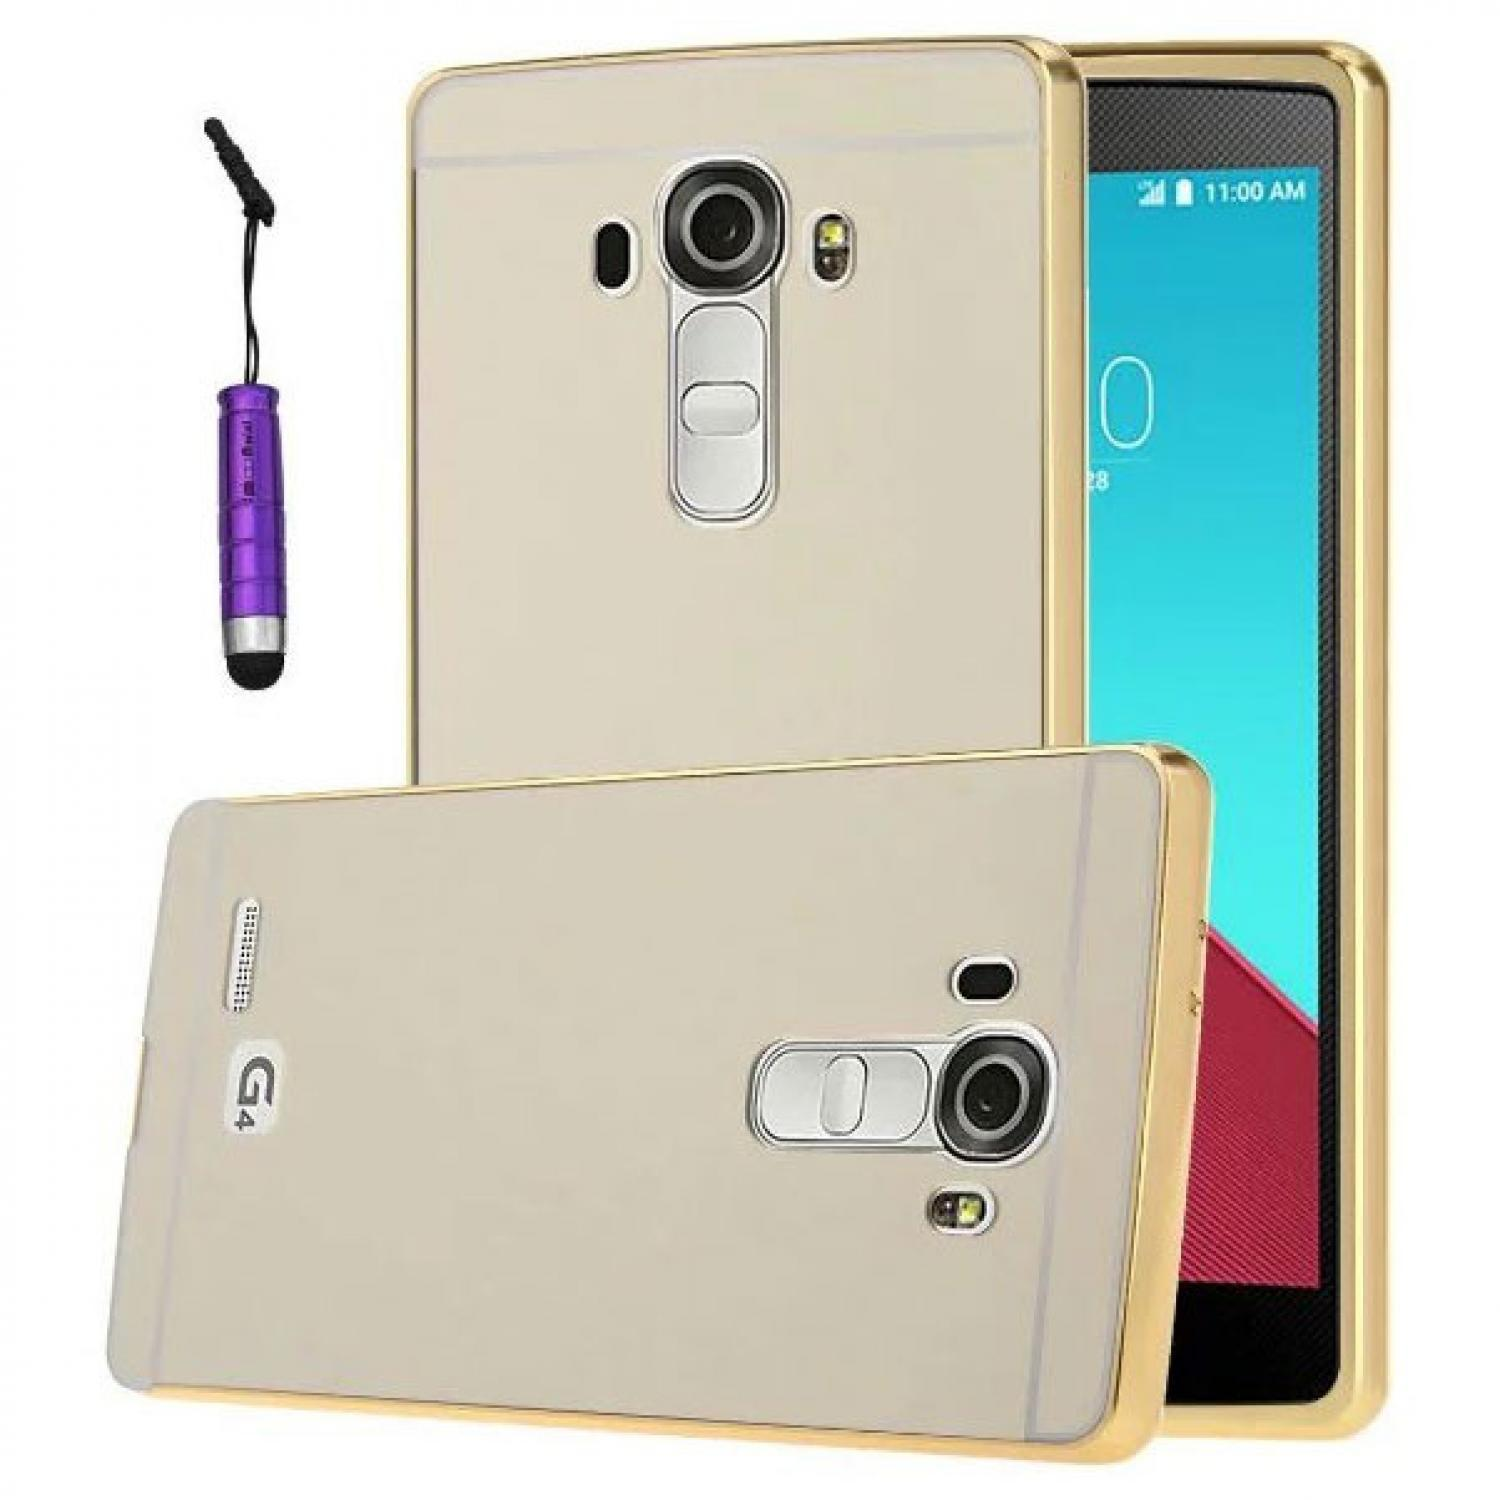 Aluminium Bumper with Mirror Back Cover for LG Casing HP Murah Terbaru